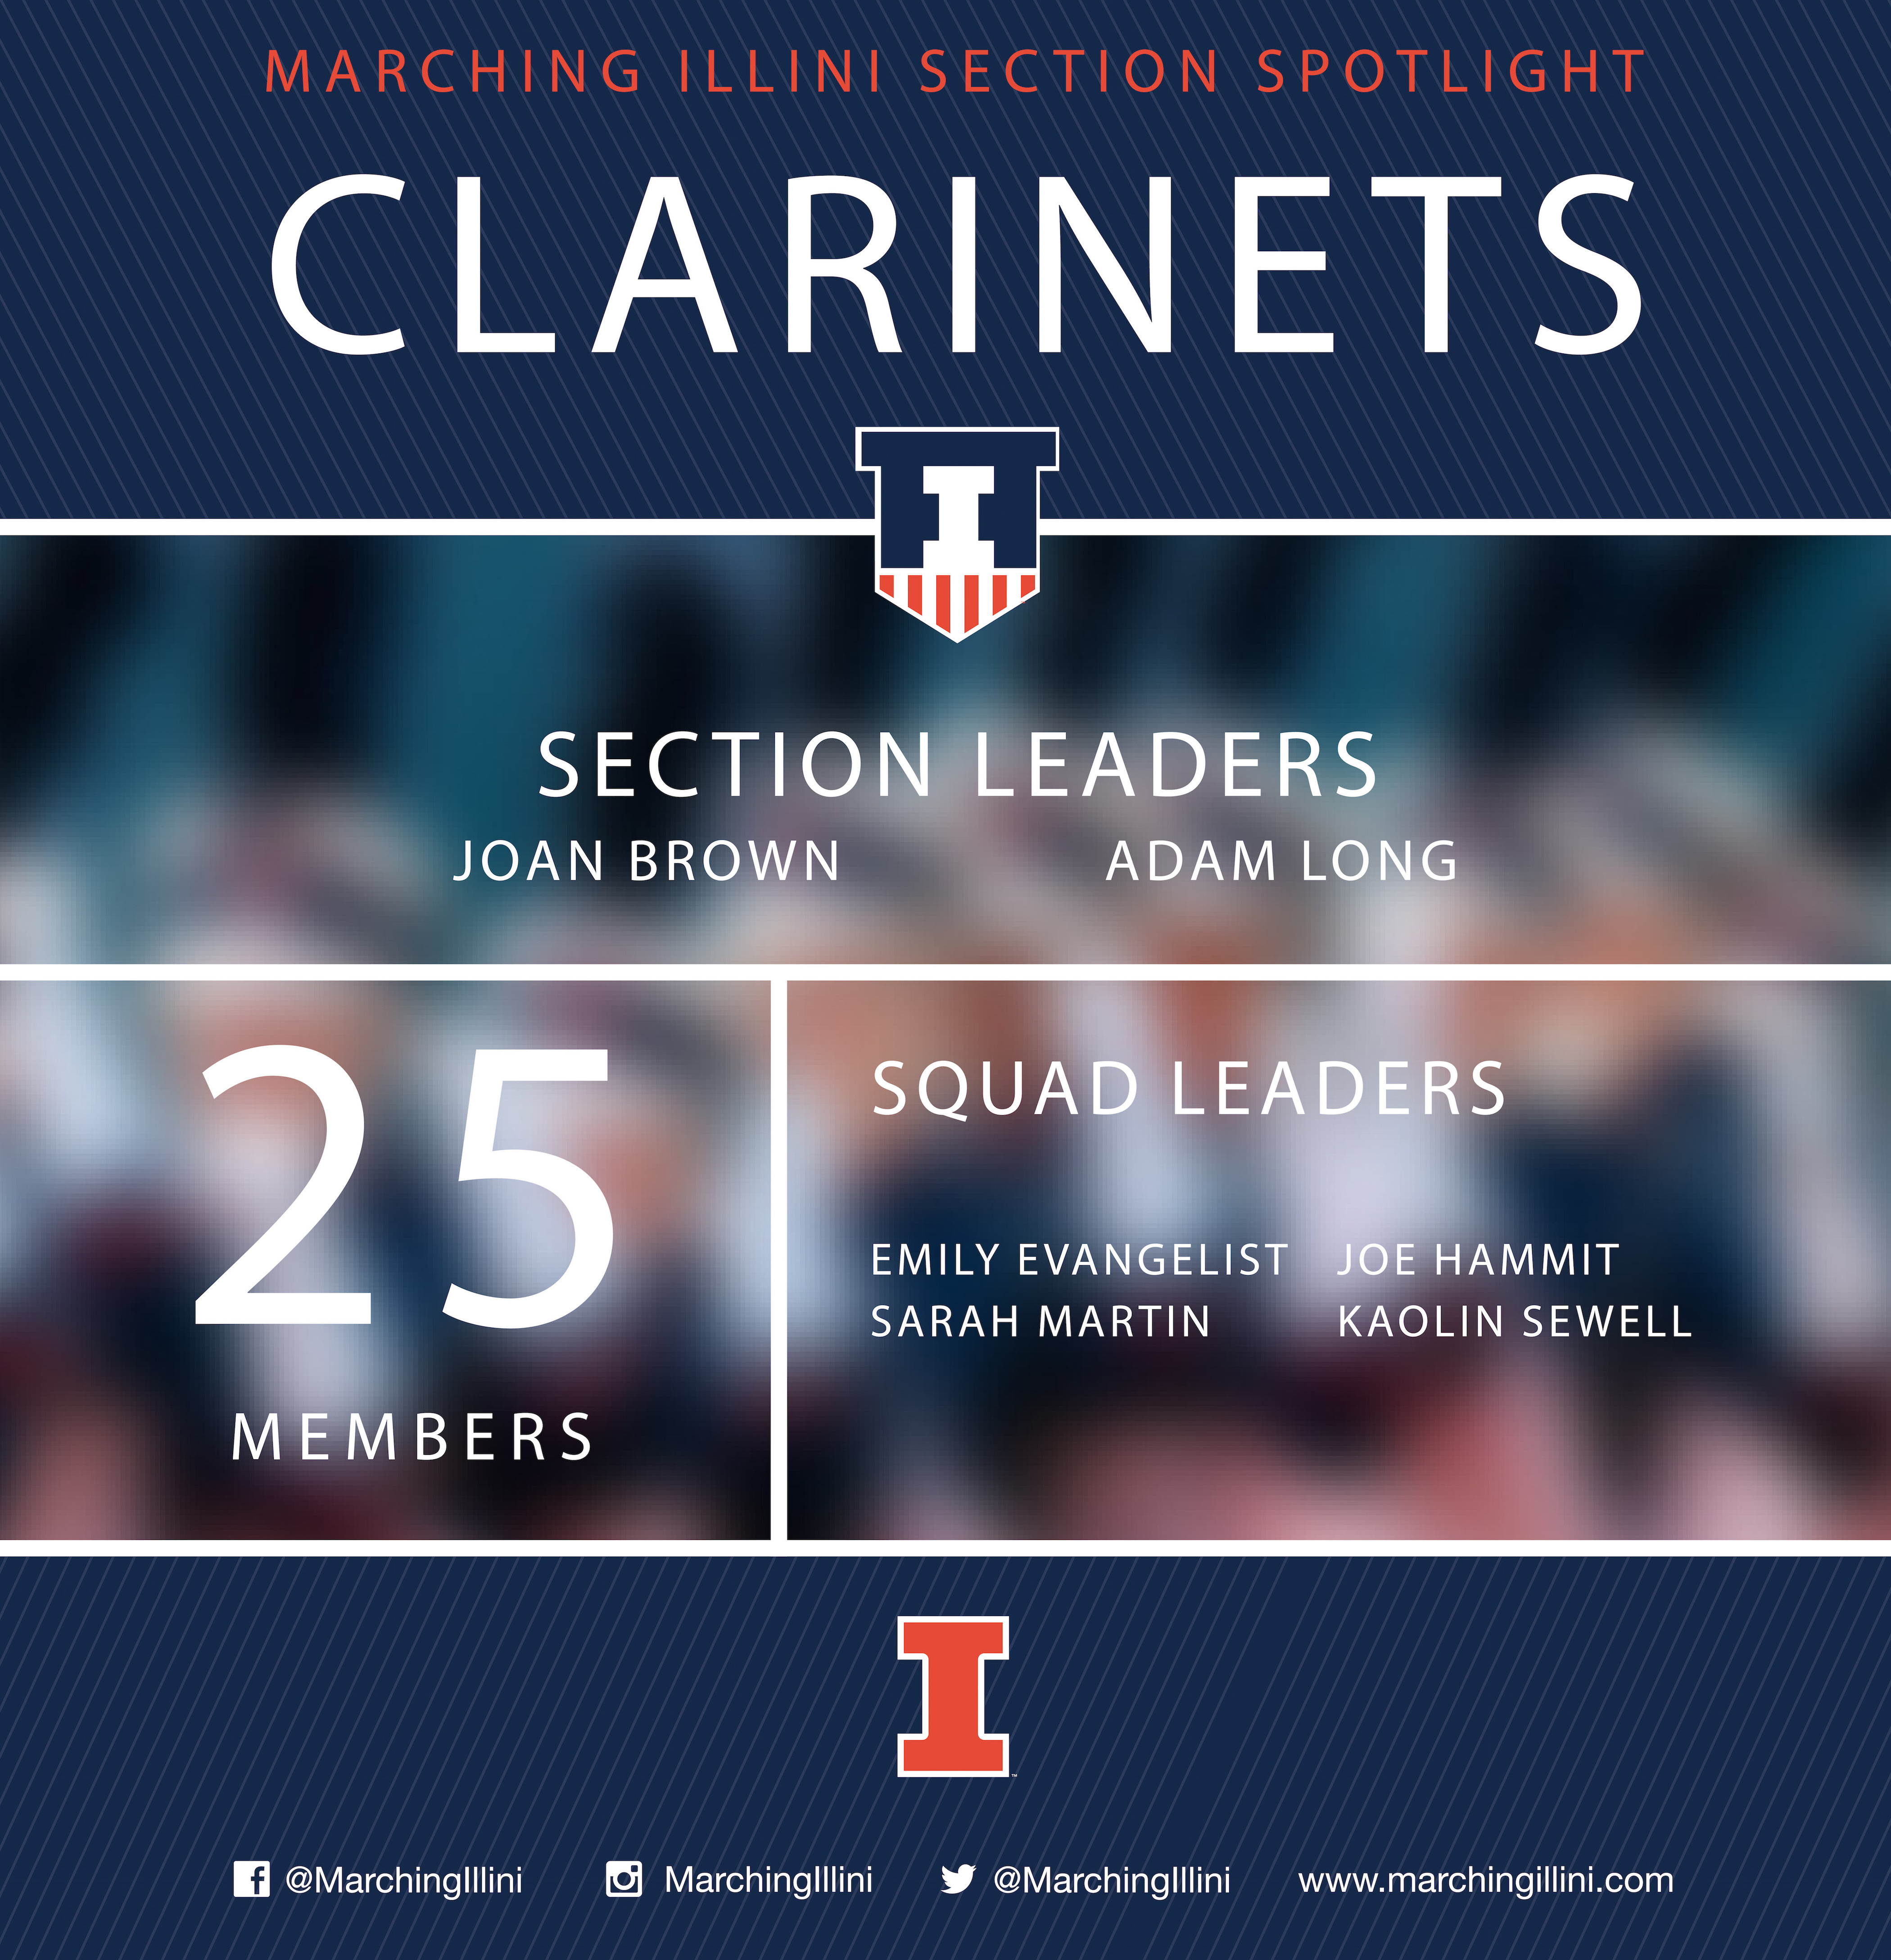 section-spotlight-clarinets